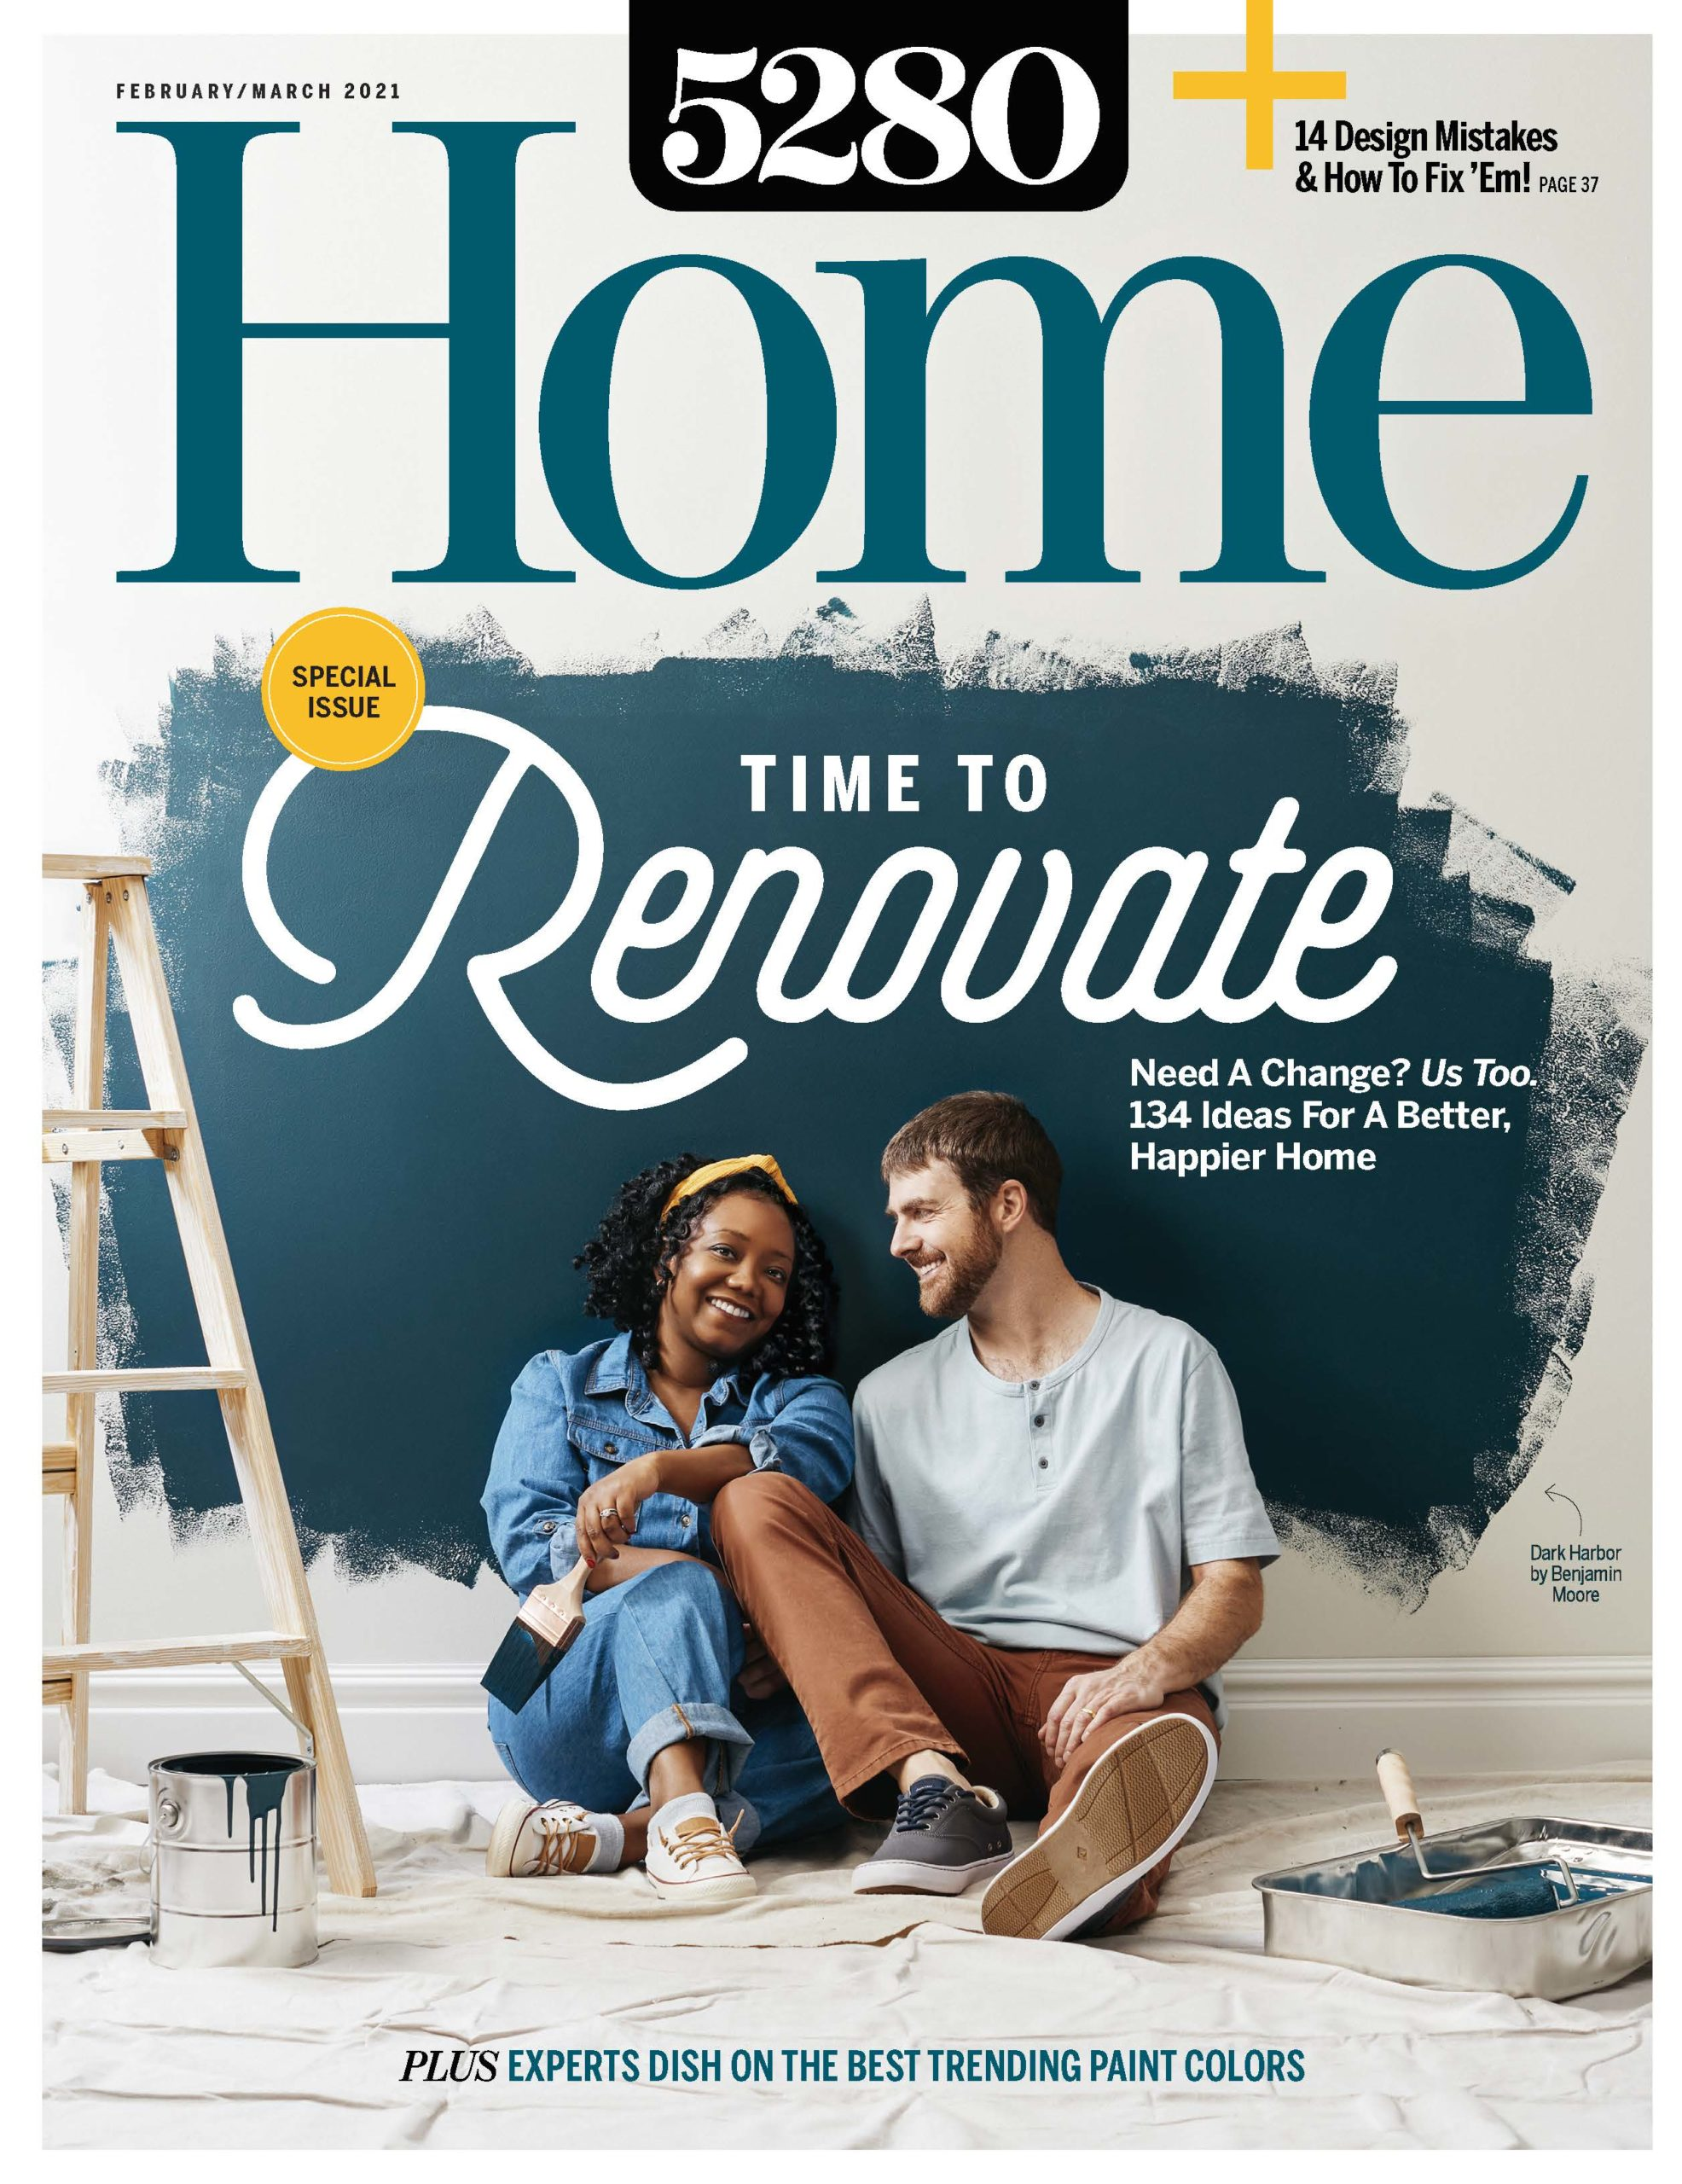 5280 Home February/March 2021